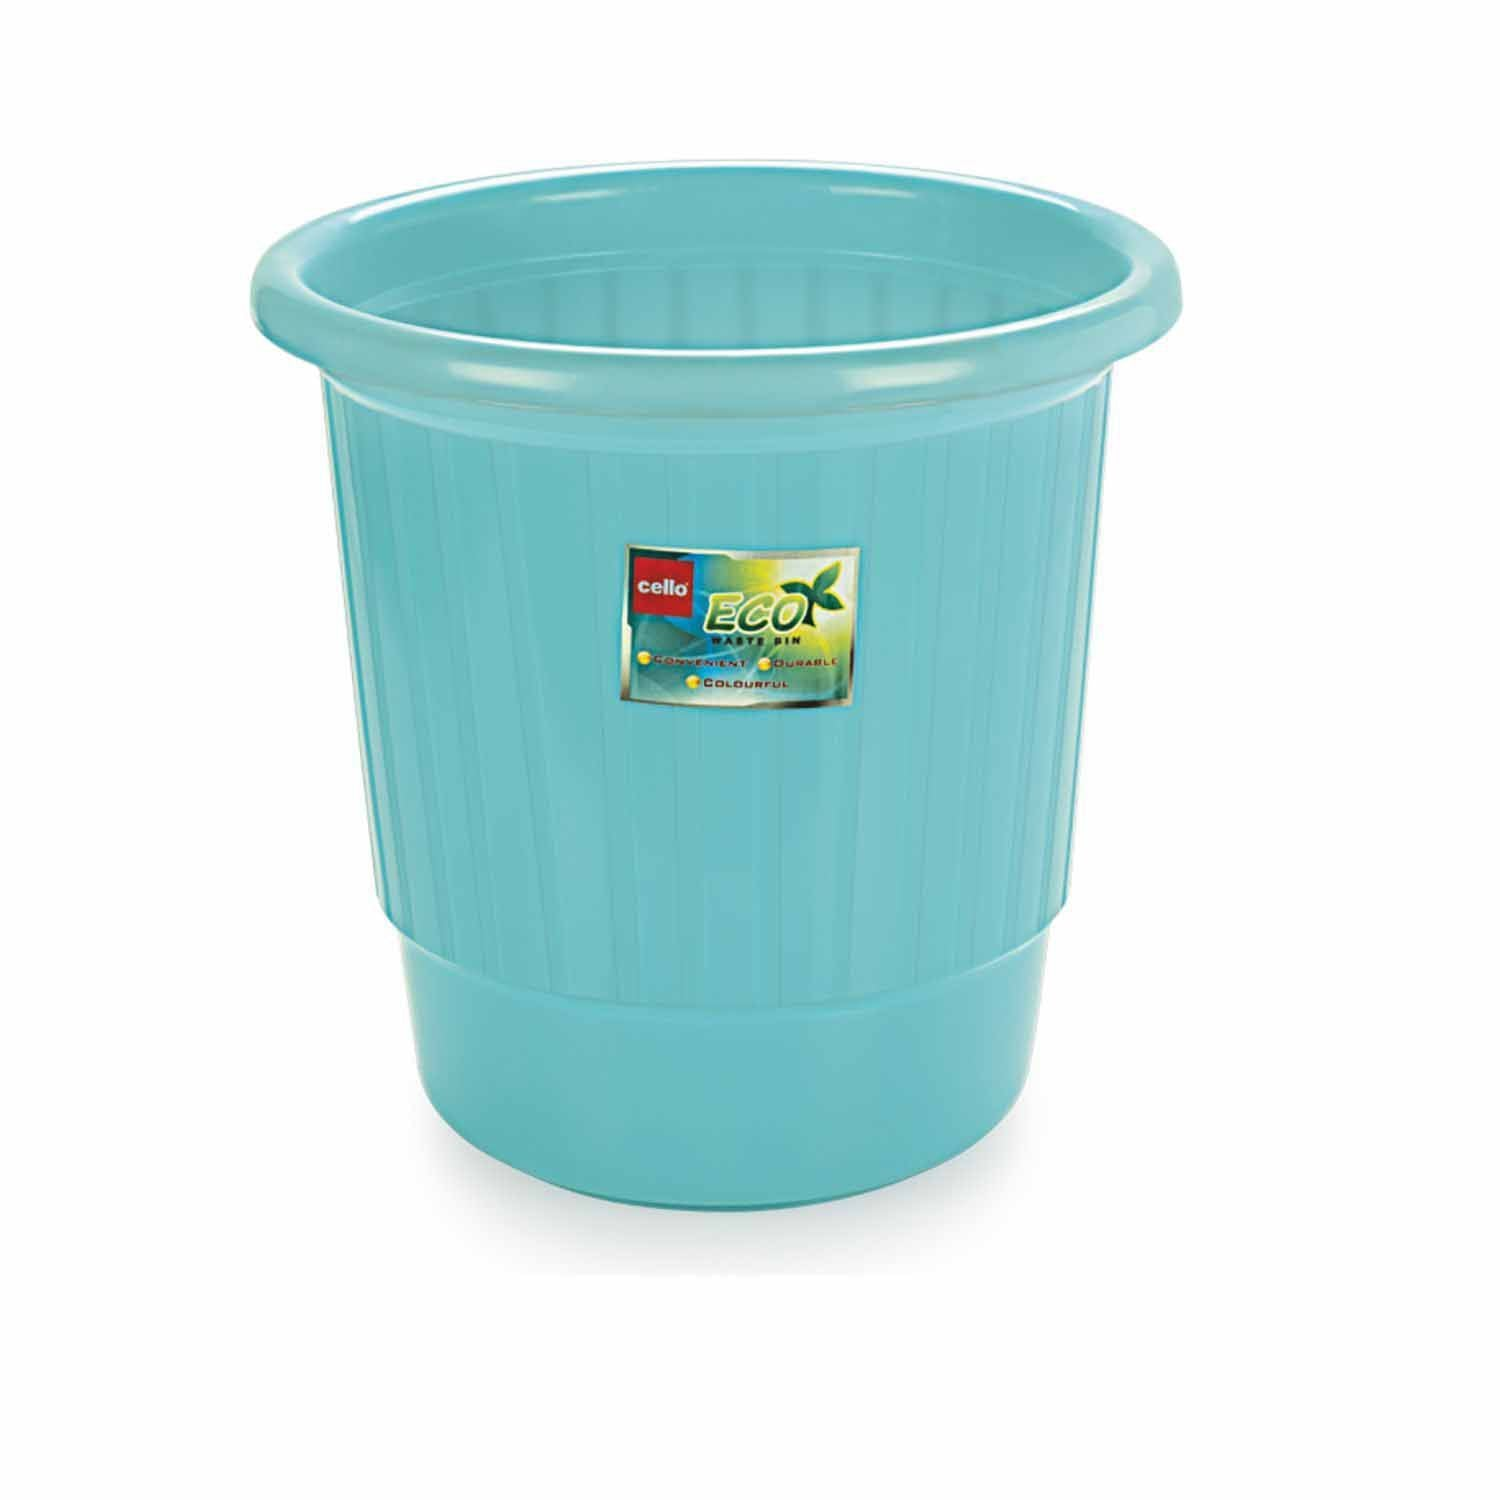 CELLO ECO WASTE BIN SMALL